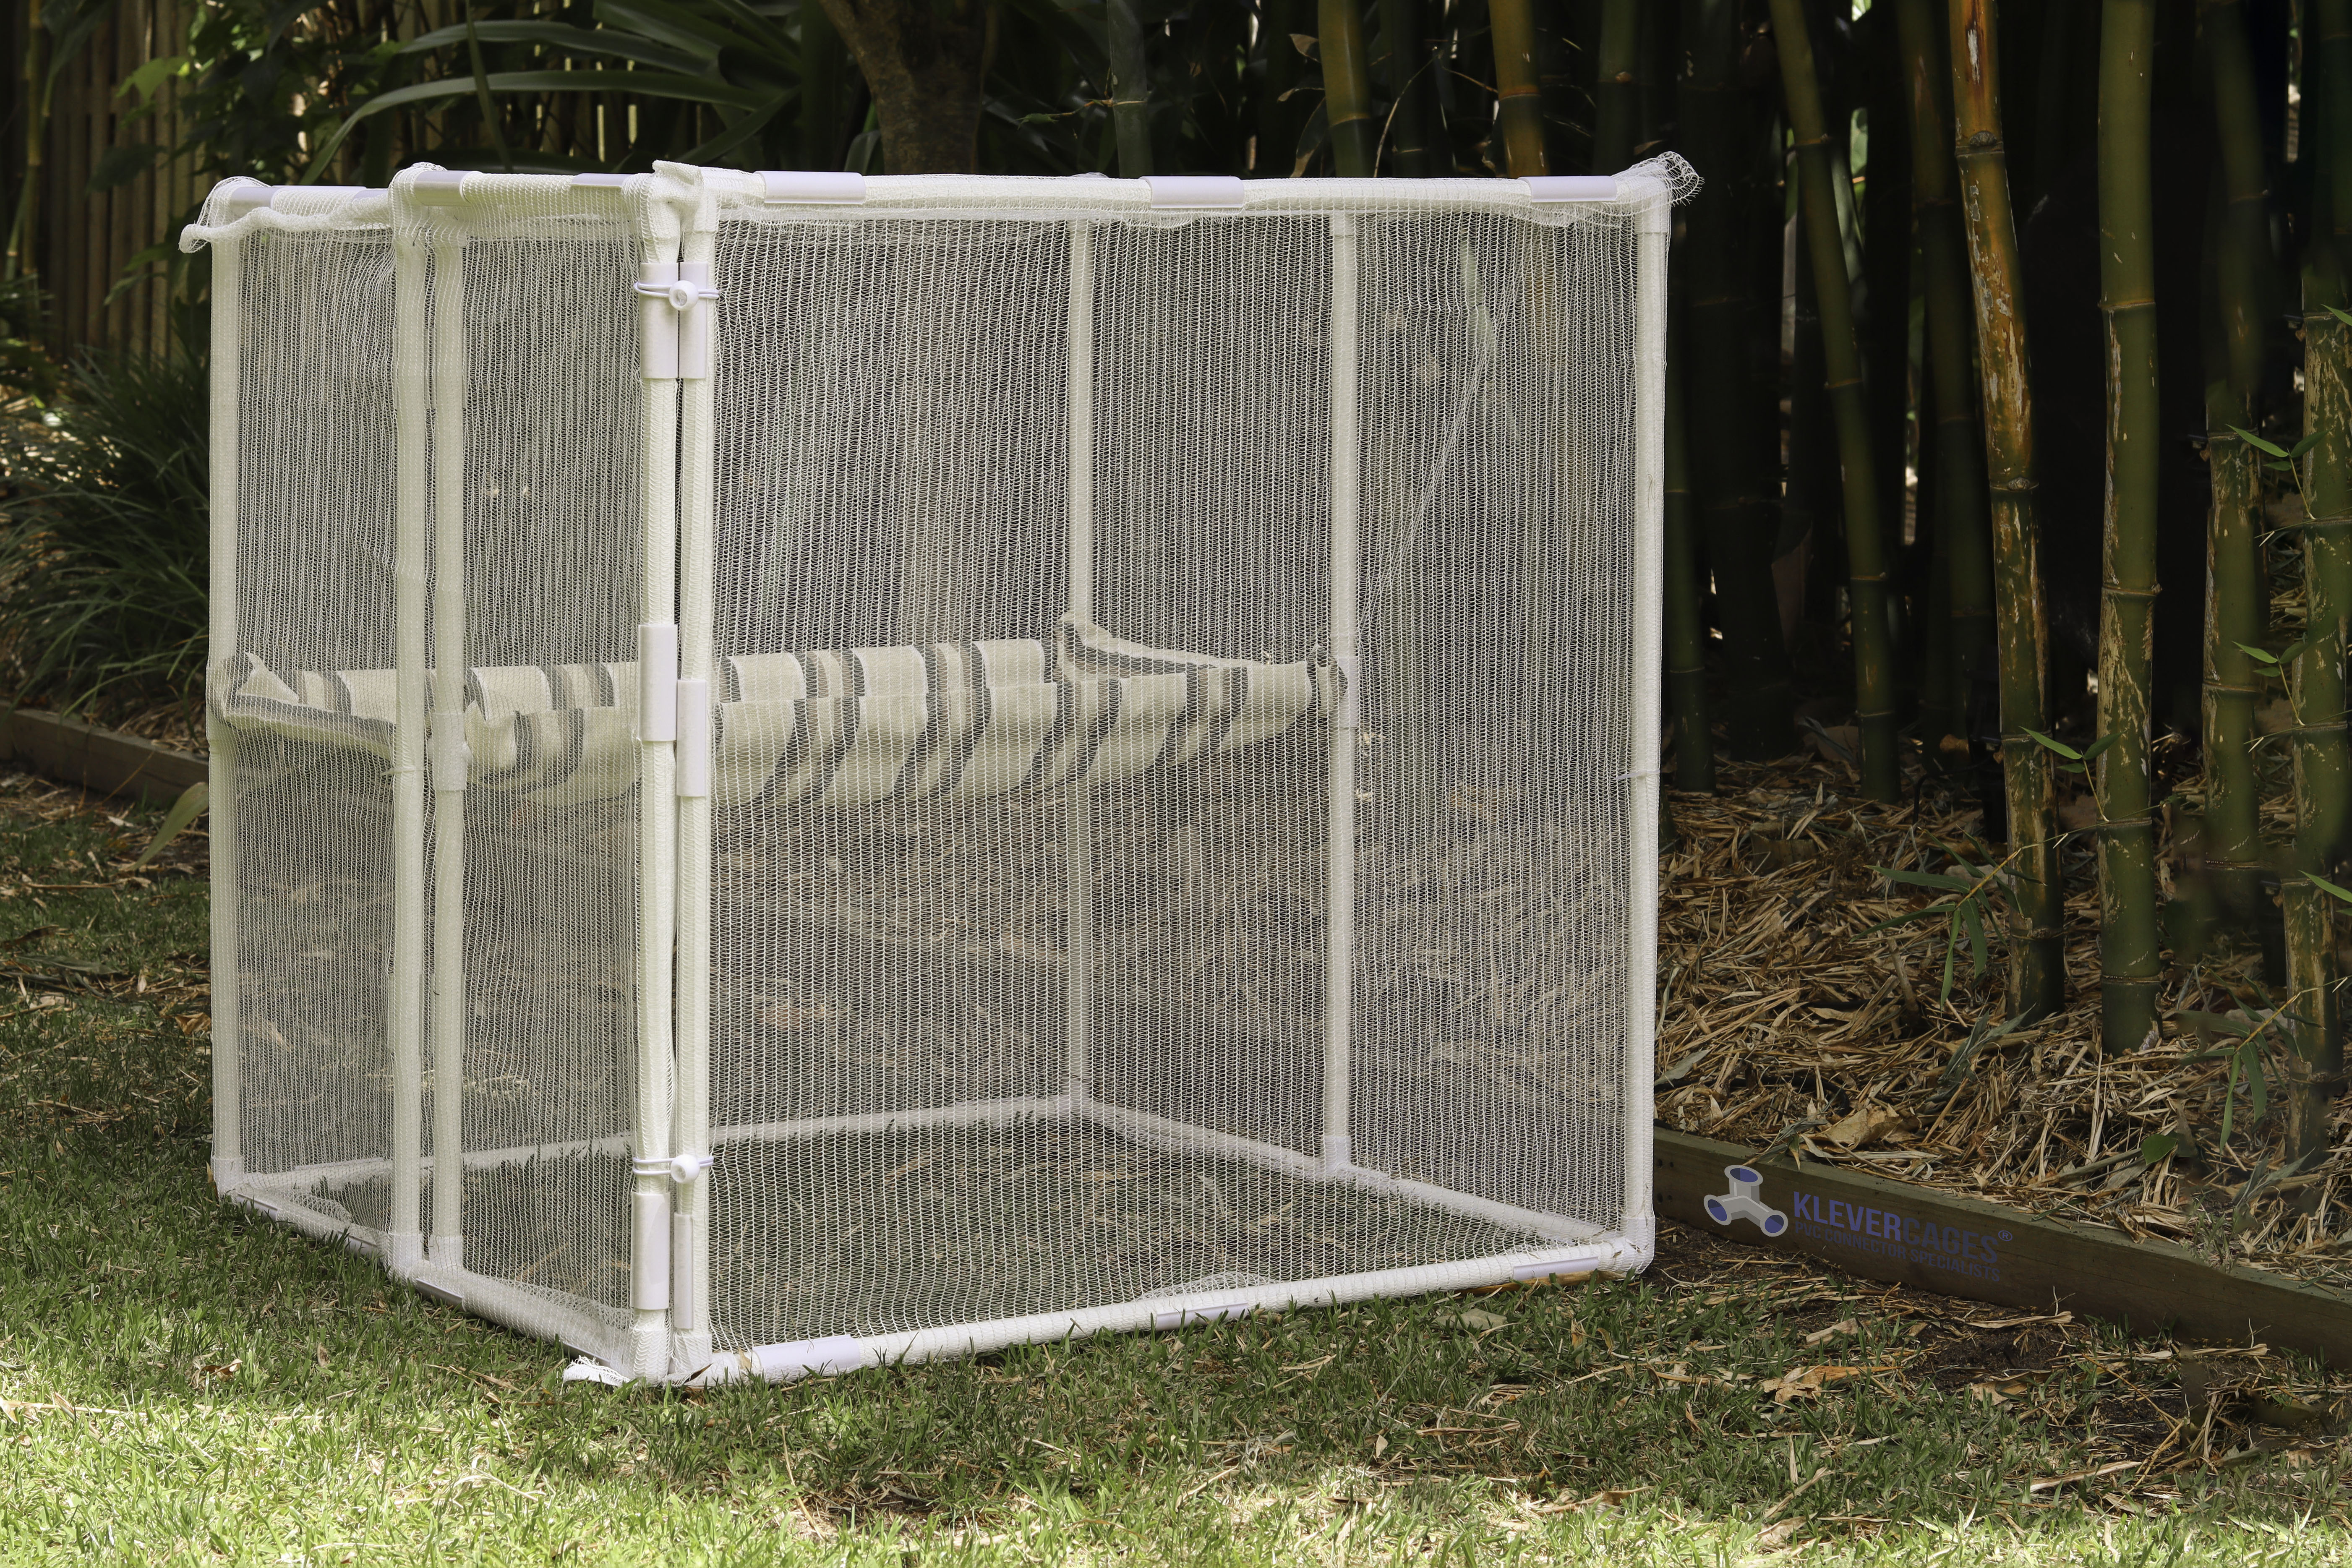 low-side-angle-of-cat-enlosure-1m2-klever-cages-.jpg